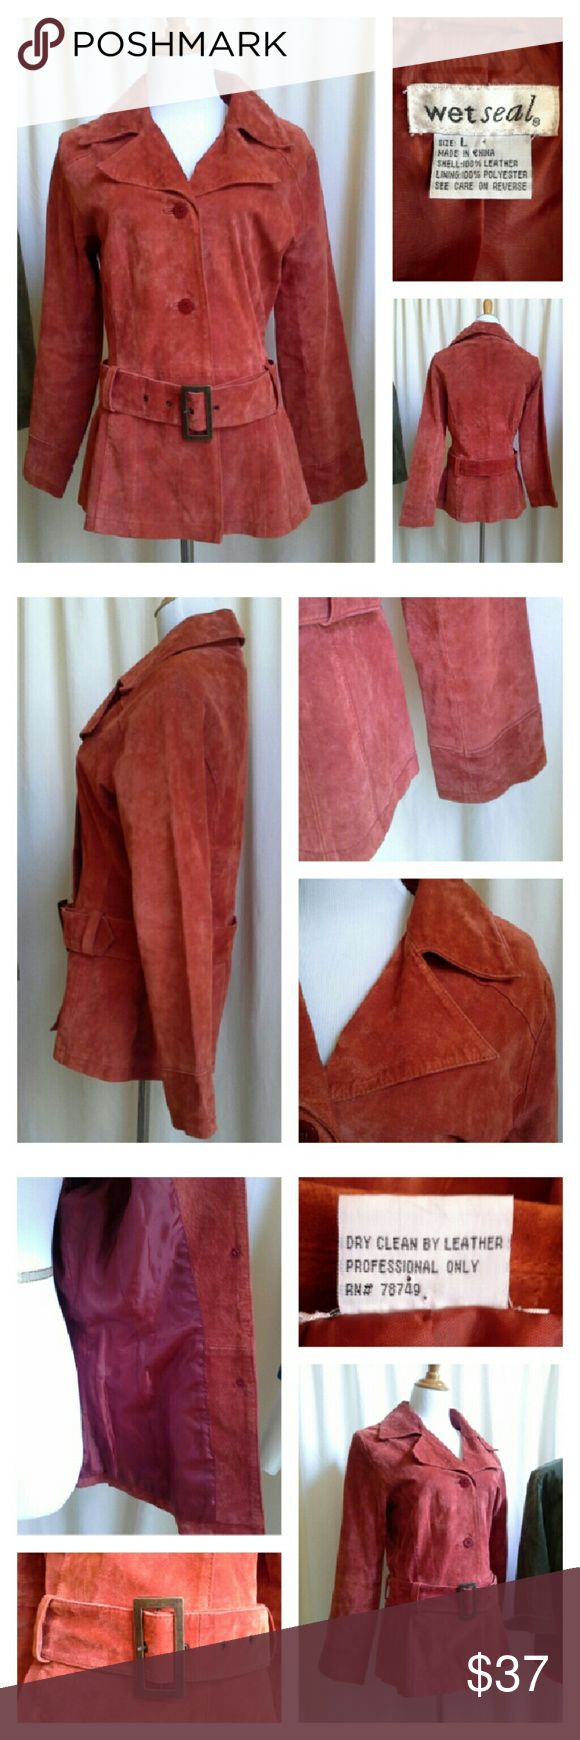 """WET SEAL Drop Waist Suede Jacket Get that 70s vibe with a giant pointy vintage style collar, and belted dropped waist. Fully lined. Trench coat style. Cinnamon rust color. Brass tone metal belt. No pockets. Approx measurements laid flat: U-U 19"""" across, Sleeve length 23-3/4"""", Waist 17"""" acr, Dropped waist at belt 18"""" across, Overall length 27"""". Wet Seal Jackets & Coats Trench Coats"""